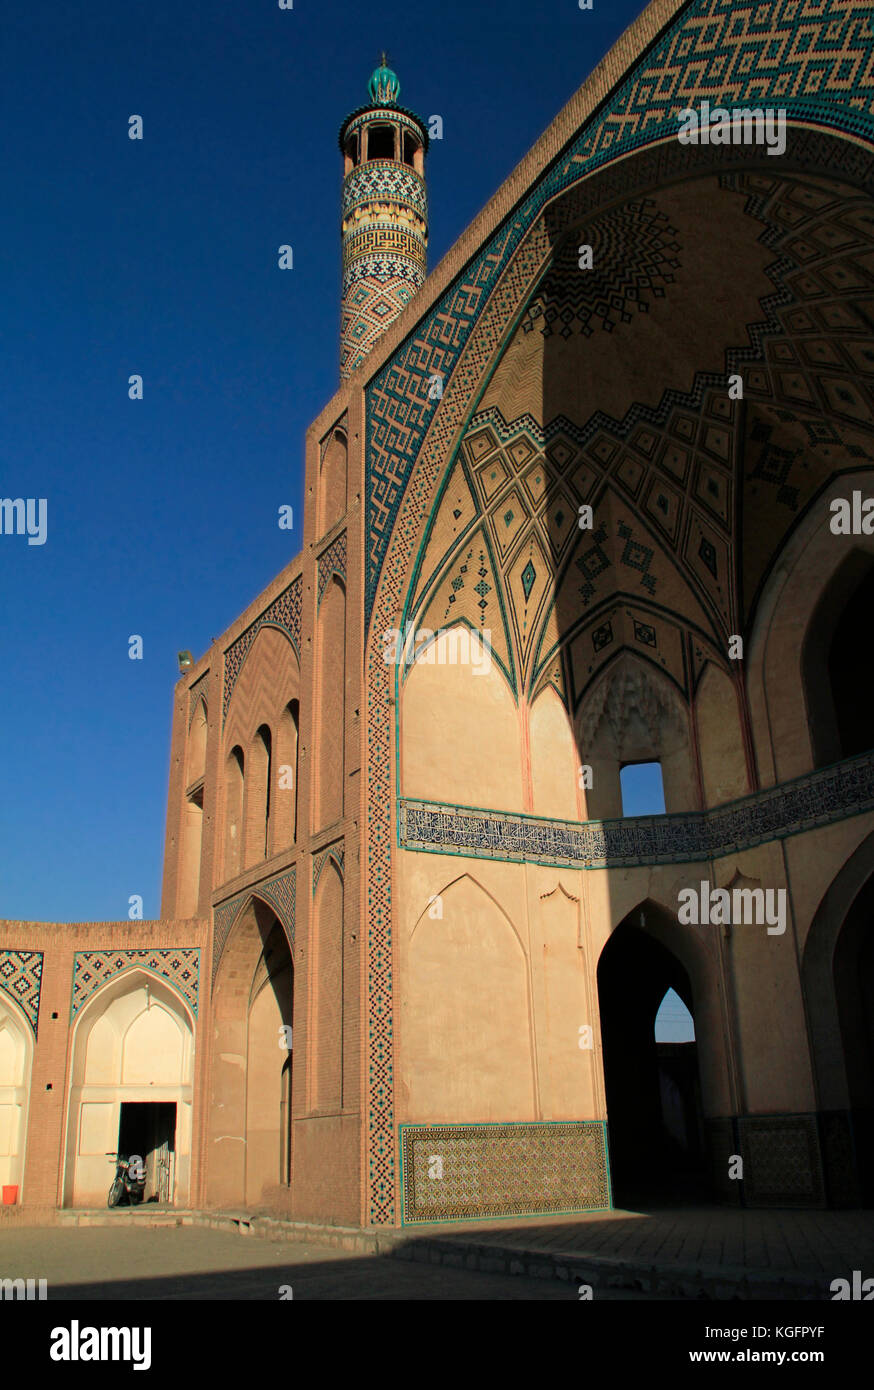 Details of Agha Bozorg mosque in Kashan, Iran - Stock Image